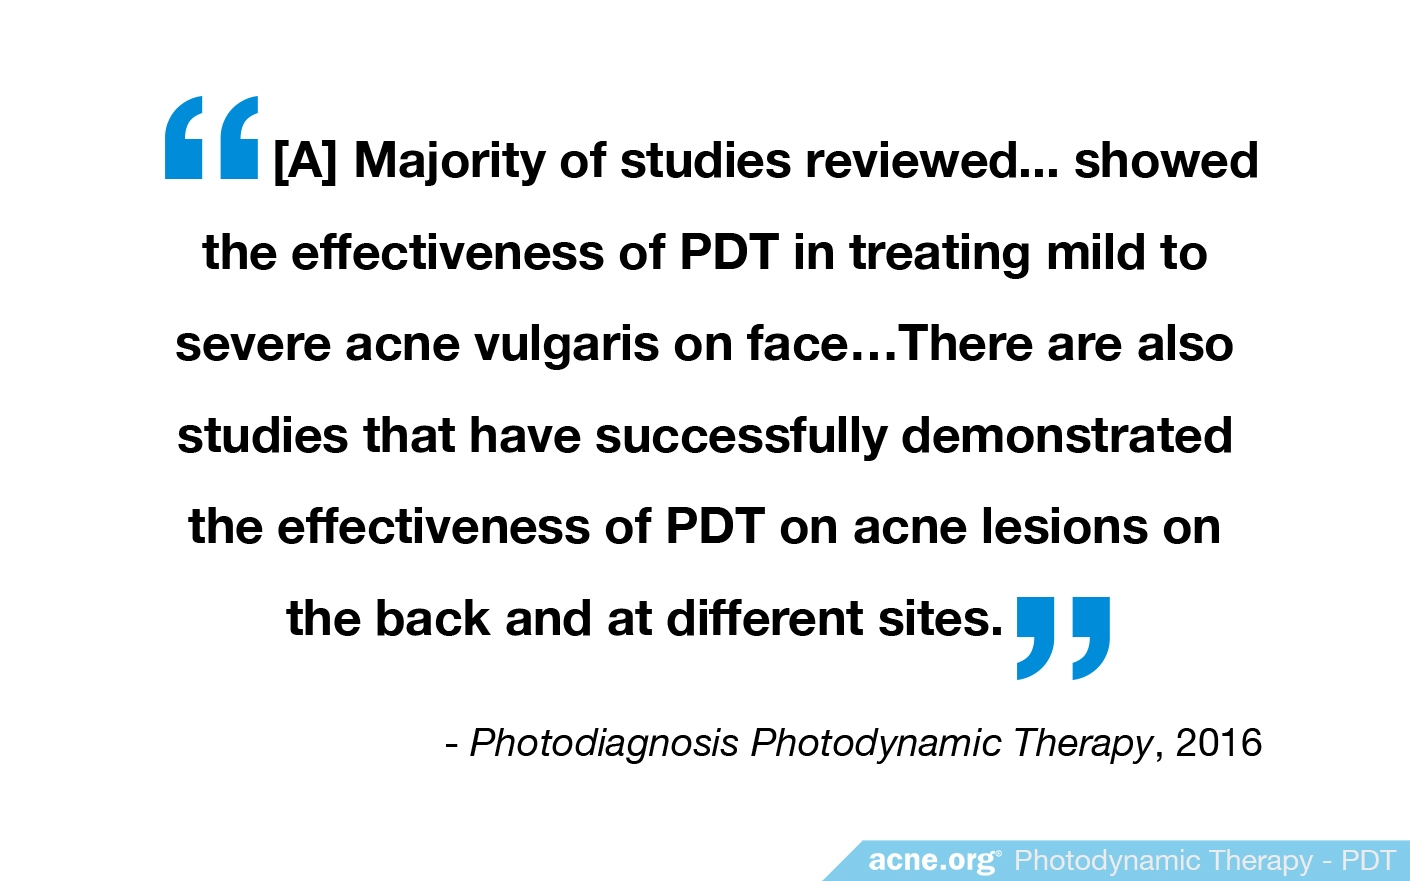 Photodynamic Therapy Quote from Study